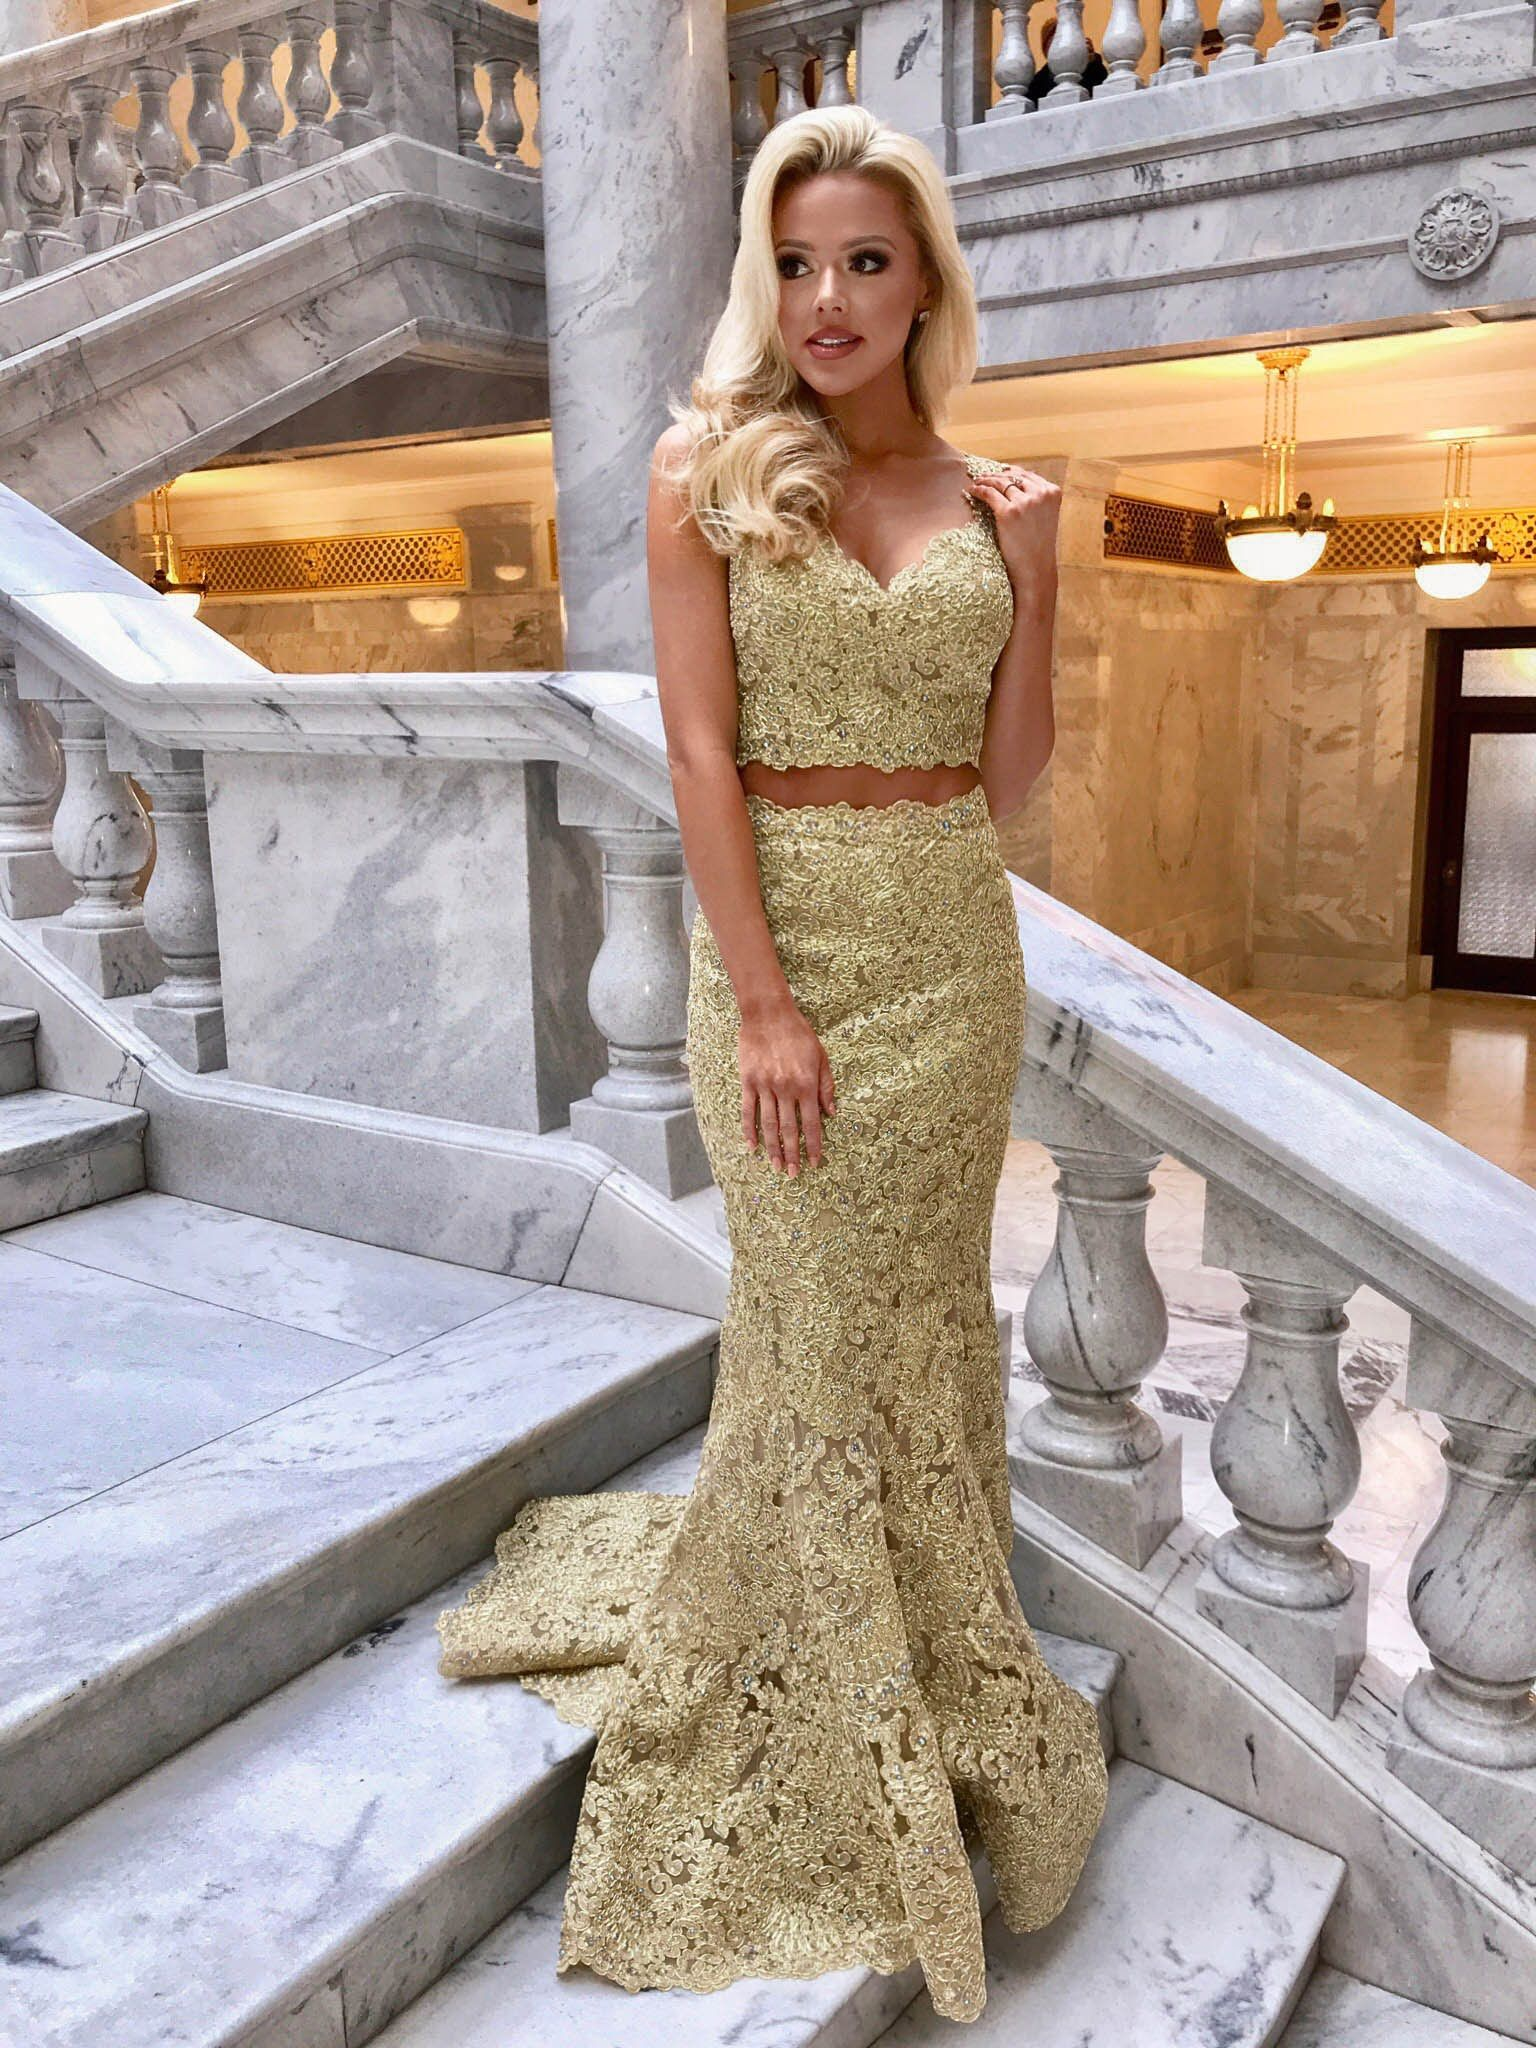 f133784640a Sherri Hill Gold 2 Piece Lace Fitted Dress Ypsilon Dresses Prom Pageant  Evening Wear Homecoming Sweethearts School Dance Dress Special Occasion  Formal ...